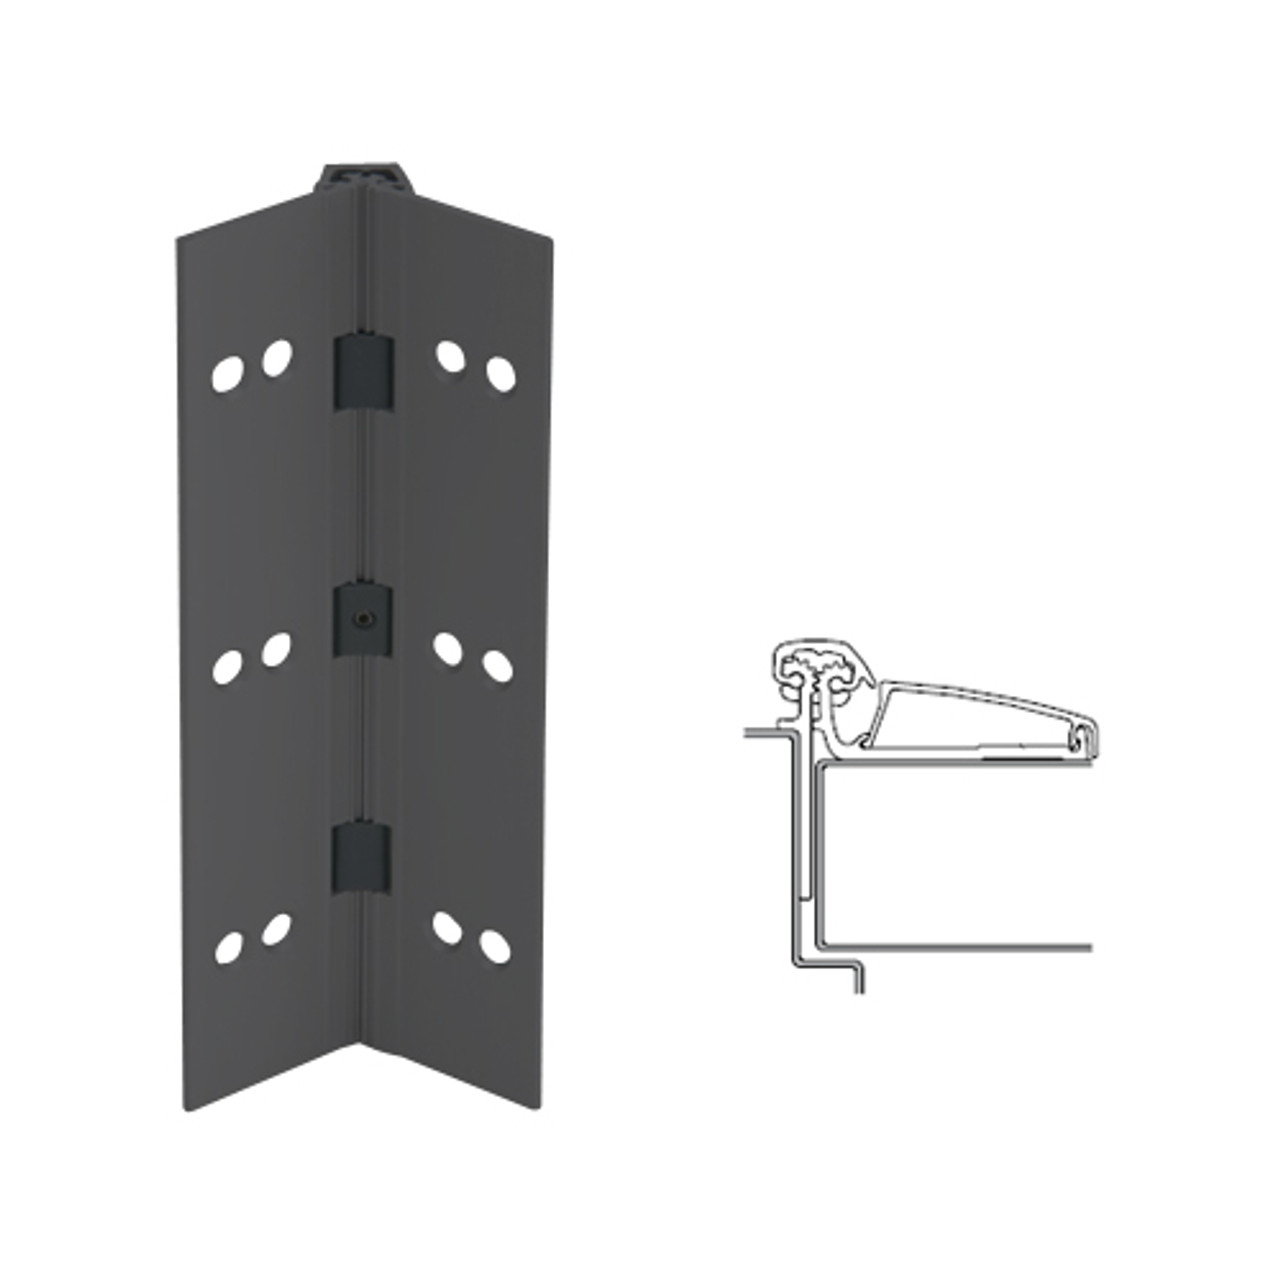 045XY-315AN-83-WD IVES Adjustable Half Surface Continuous Geared Hinges with Wood Screws in Anodized Black